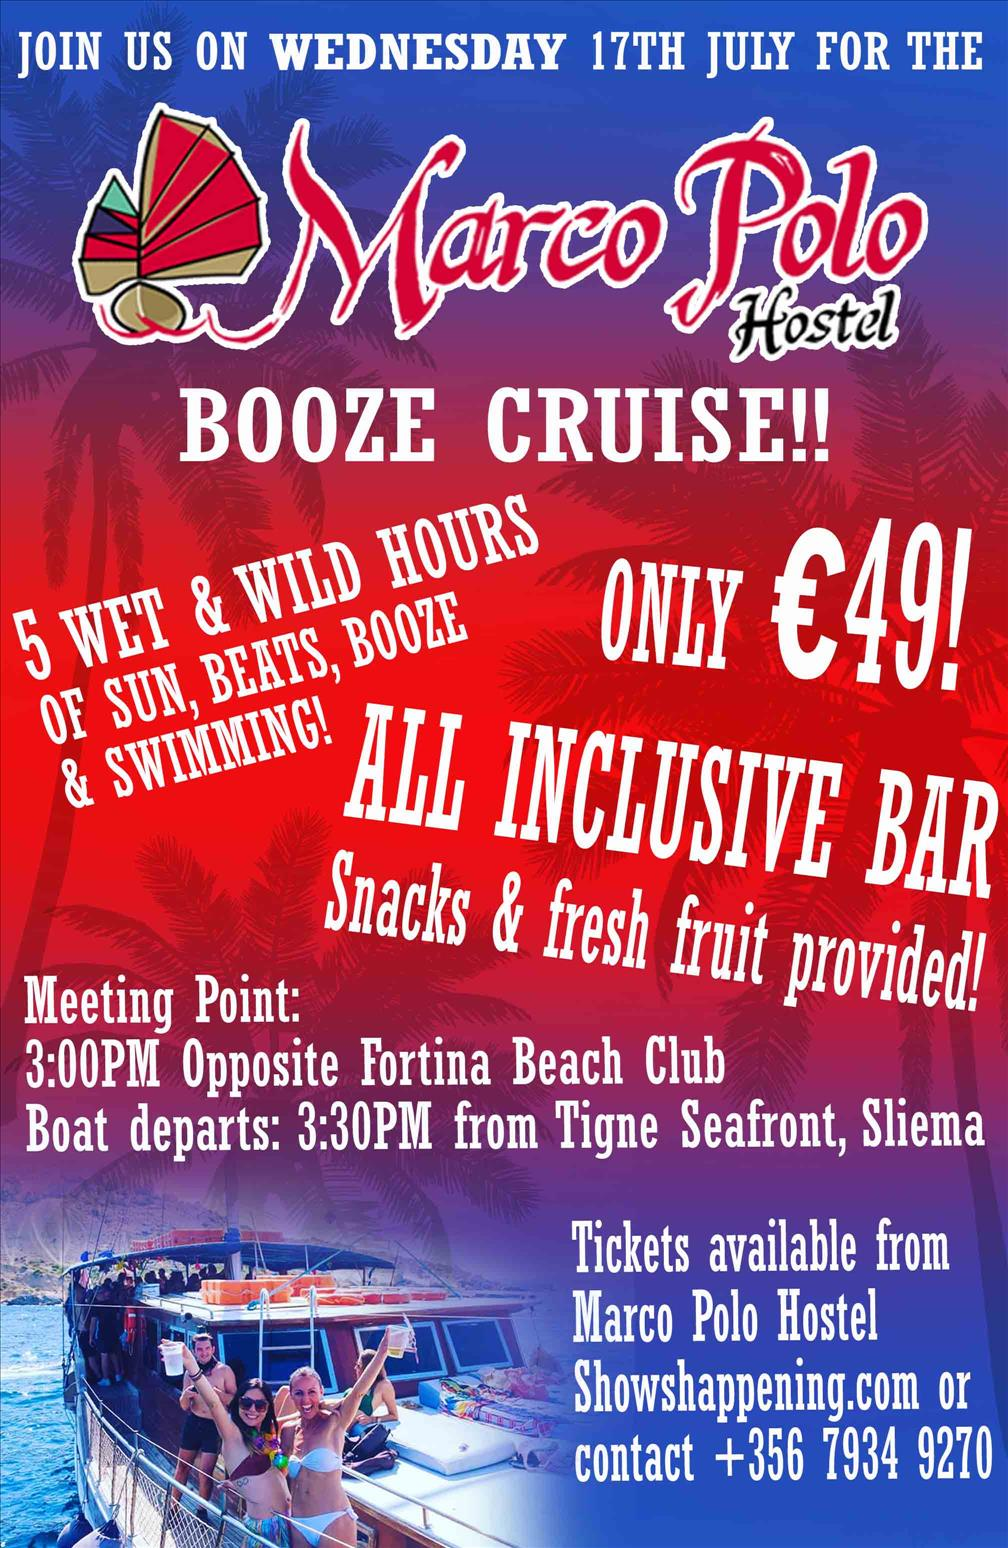 Marco Polo Hostel Booze Cruise